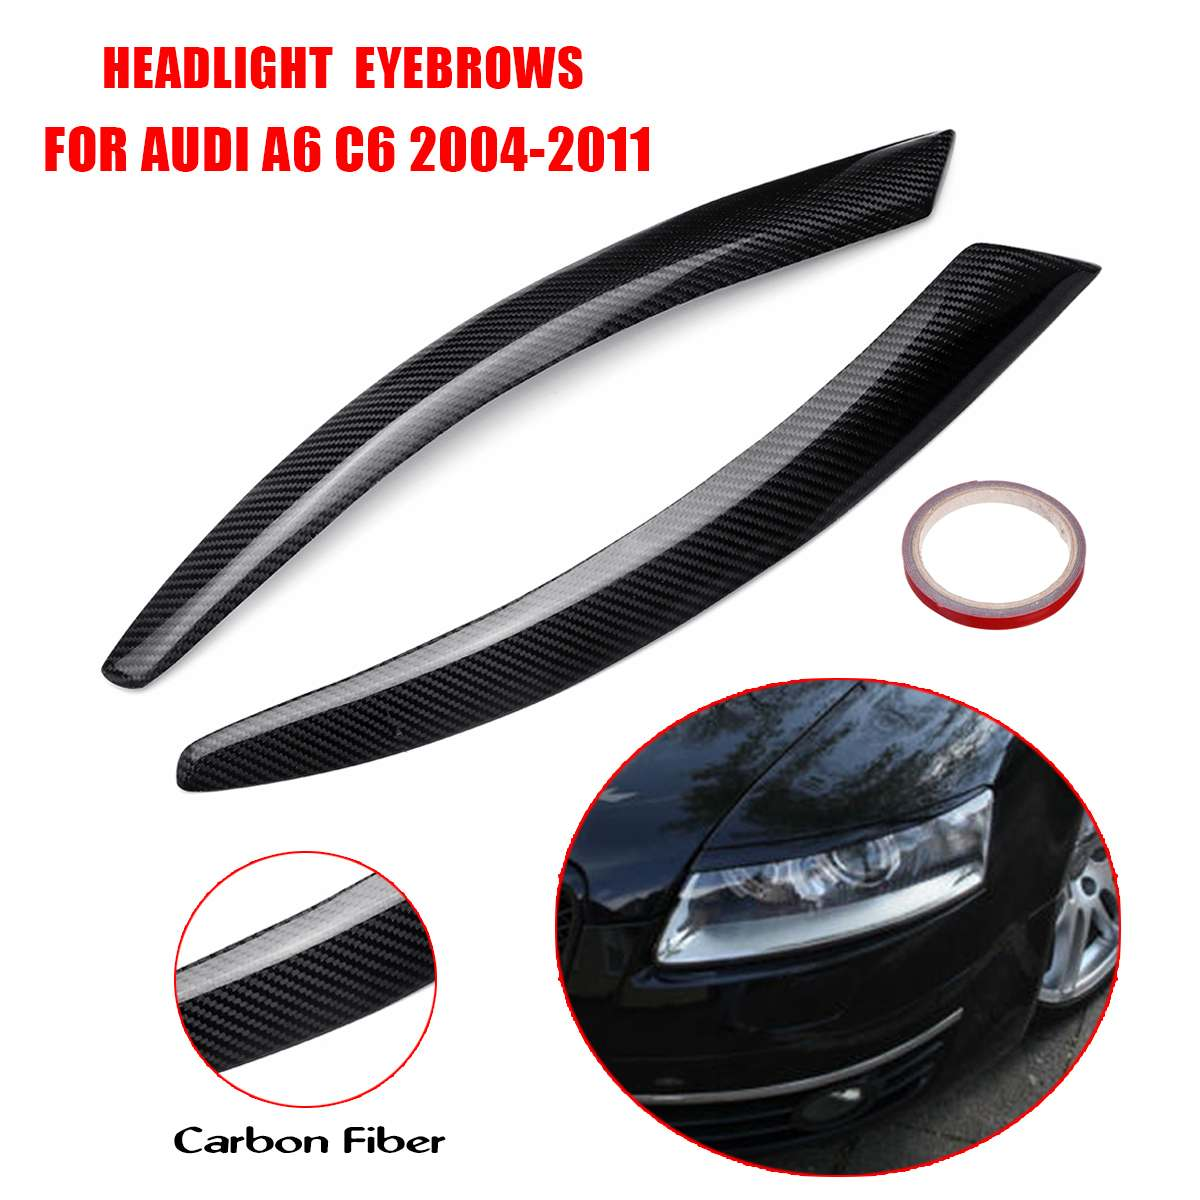 2pcs Carbon Fiber Car Headlight Eyebrow Cover Trim Sticker Head Lamp Eyelid for Audi A6 C6 2005 2006 2007 2008 2009 2010 2011 image